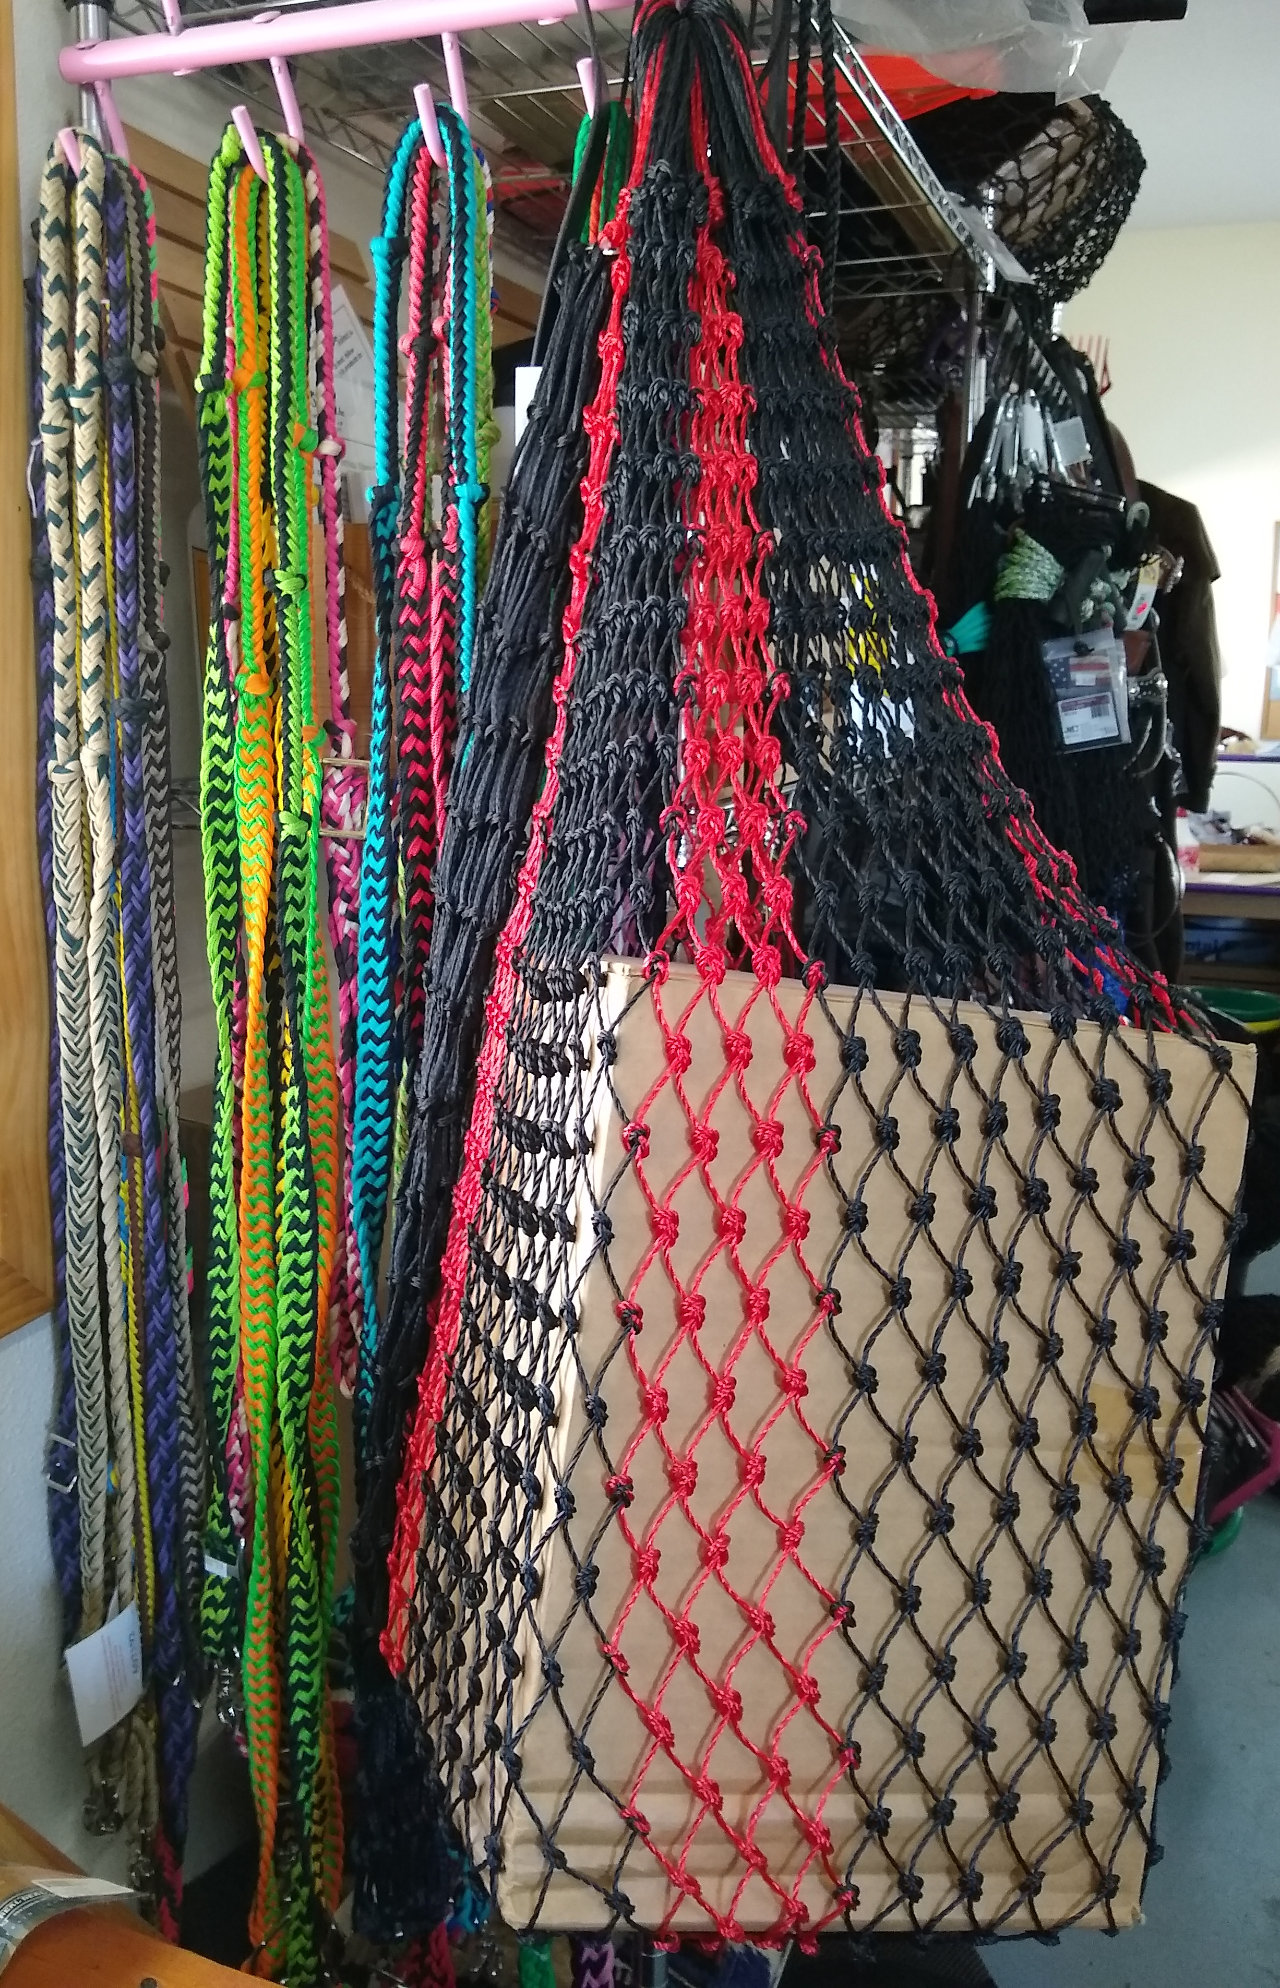 Net bags and lead ropes